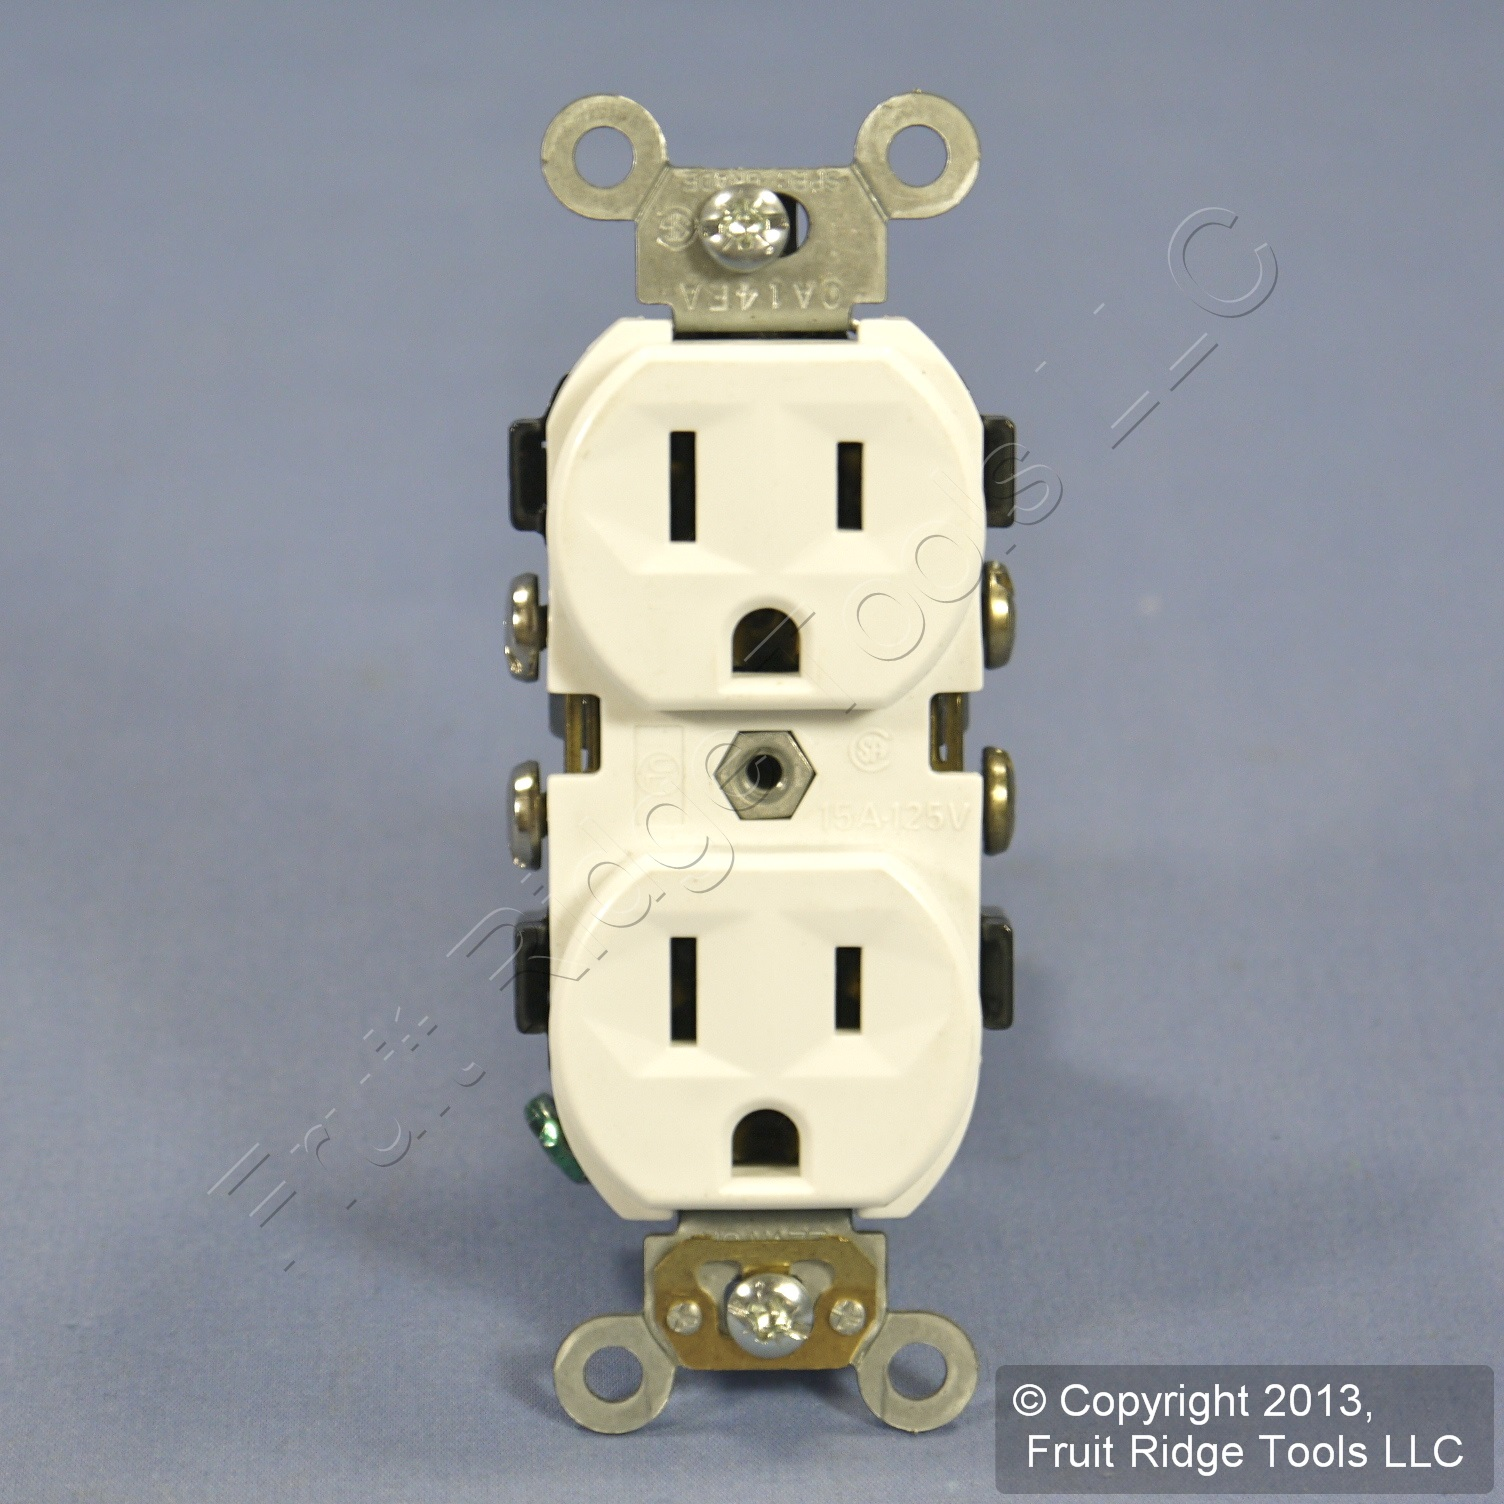 New Leviton White COMMERCIAL GRADE Outlet Duplex Receptacle